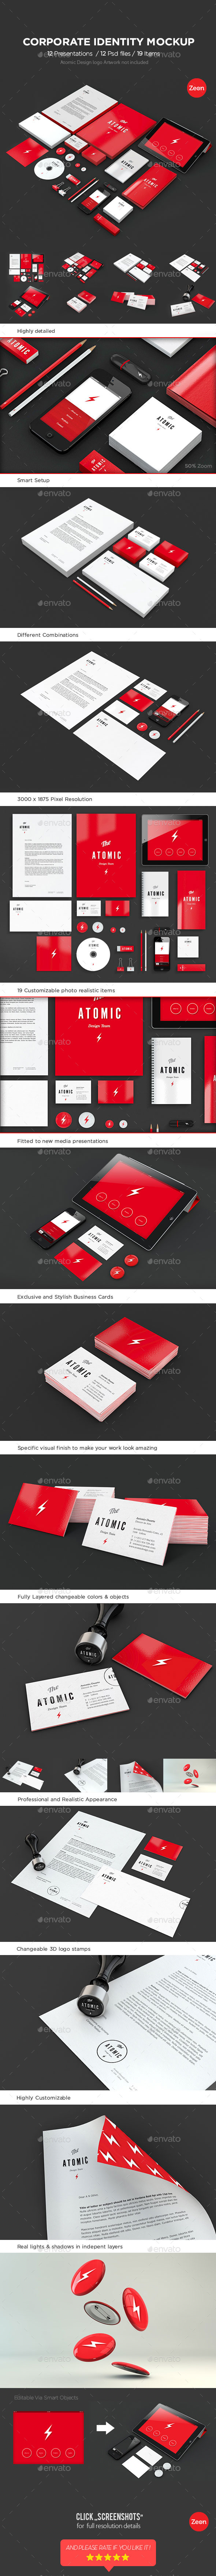 Corporate Identity Mockup Bundle